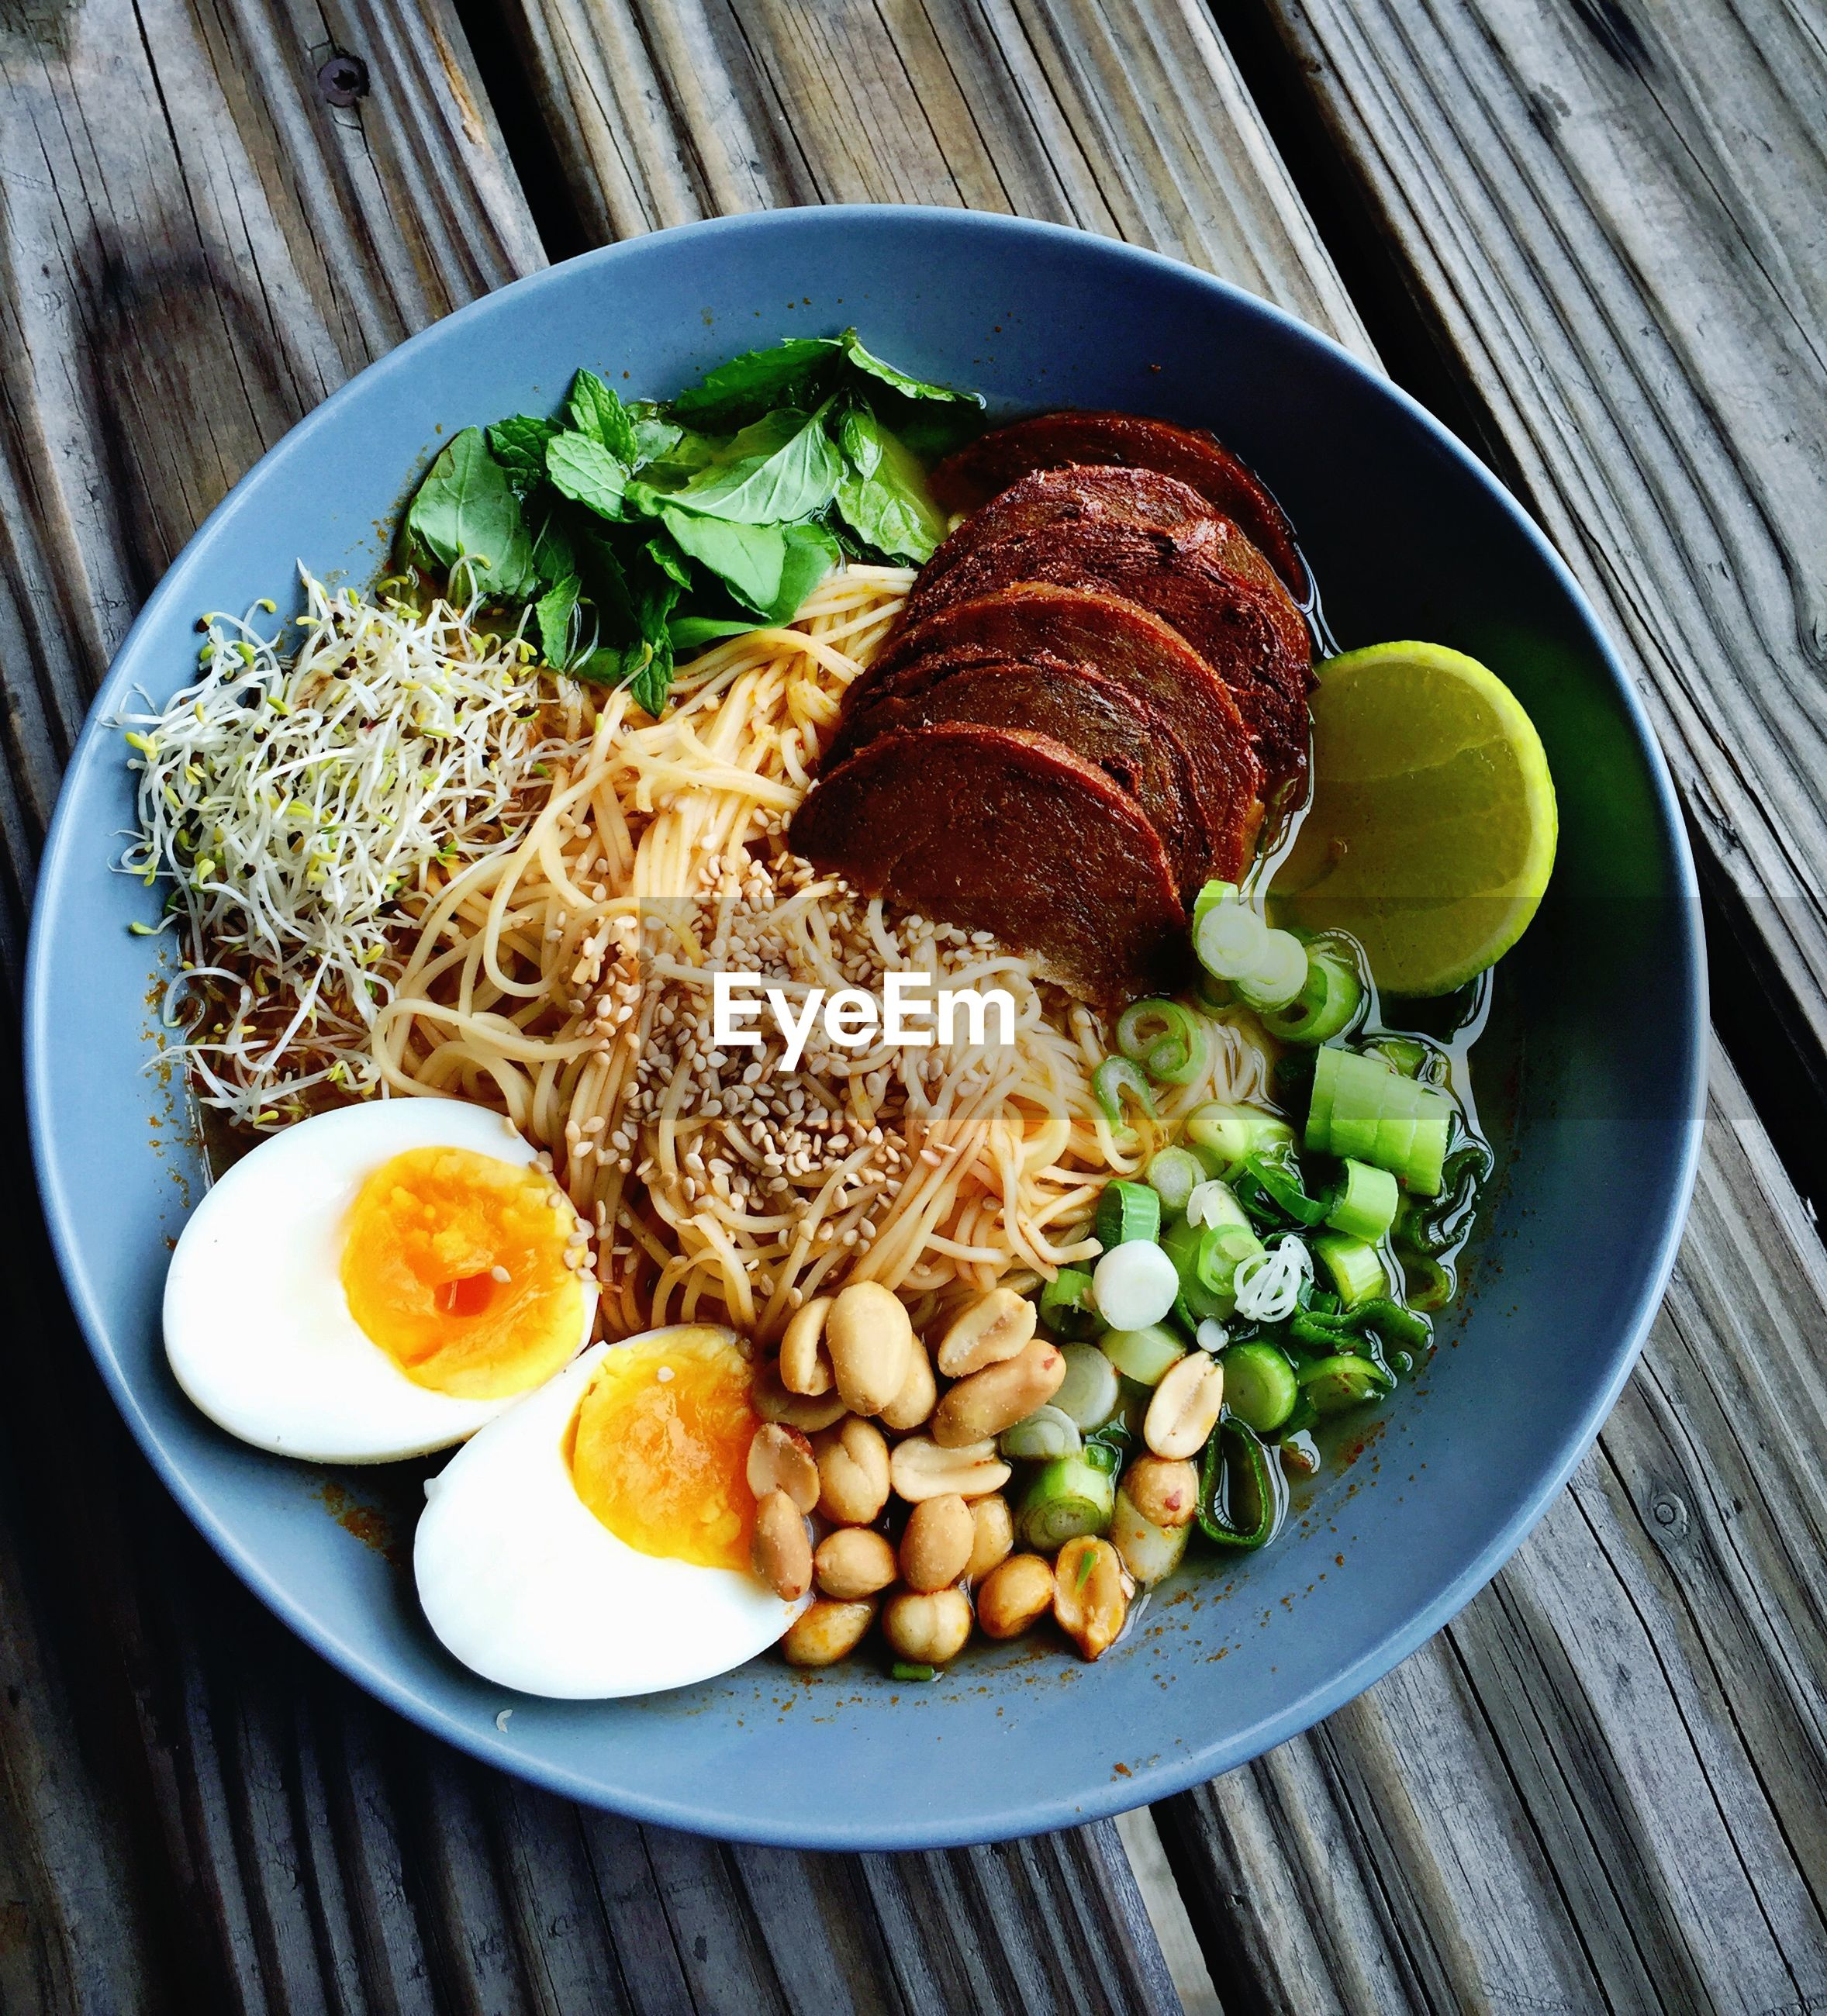 Directly above shot of breakfast in bowl on table